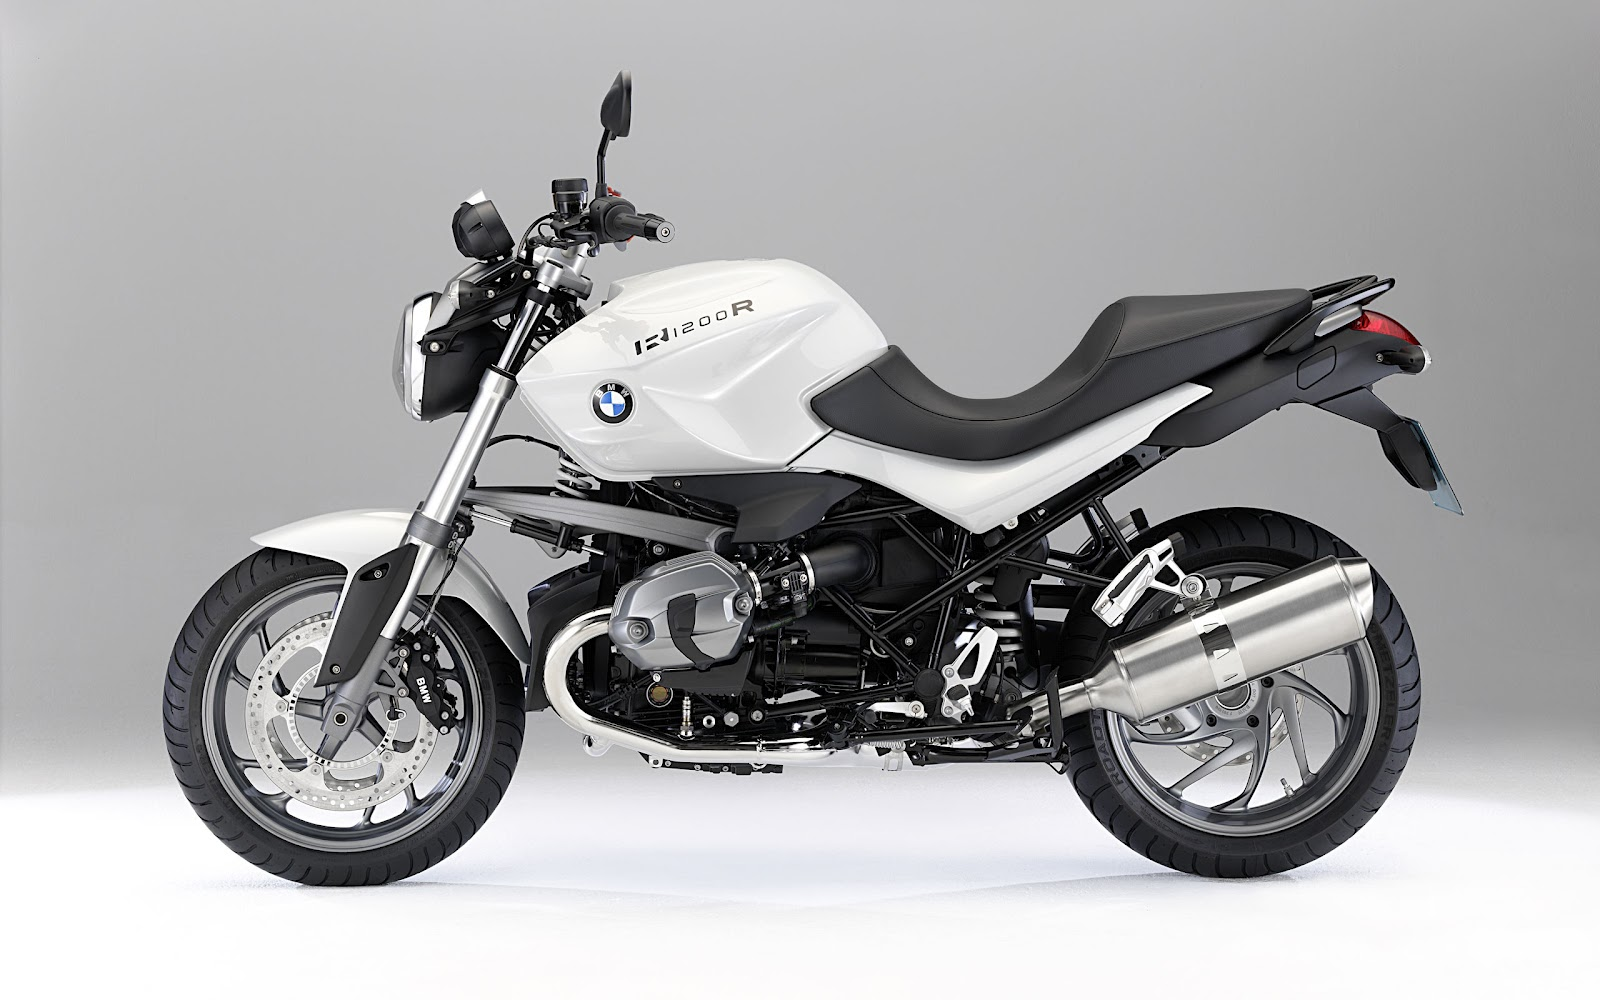 bmw r 1200 r motorcycle hd wallpapers hd wallpapers backgrounds photos pi. Black Bedroom Furniture Sets. Home Design Ideas